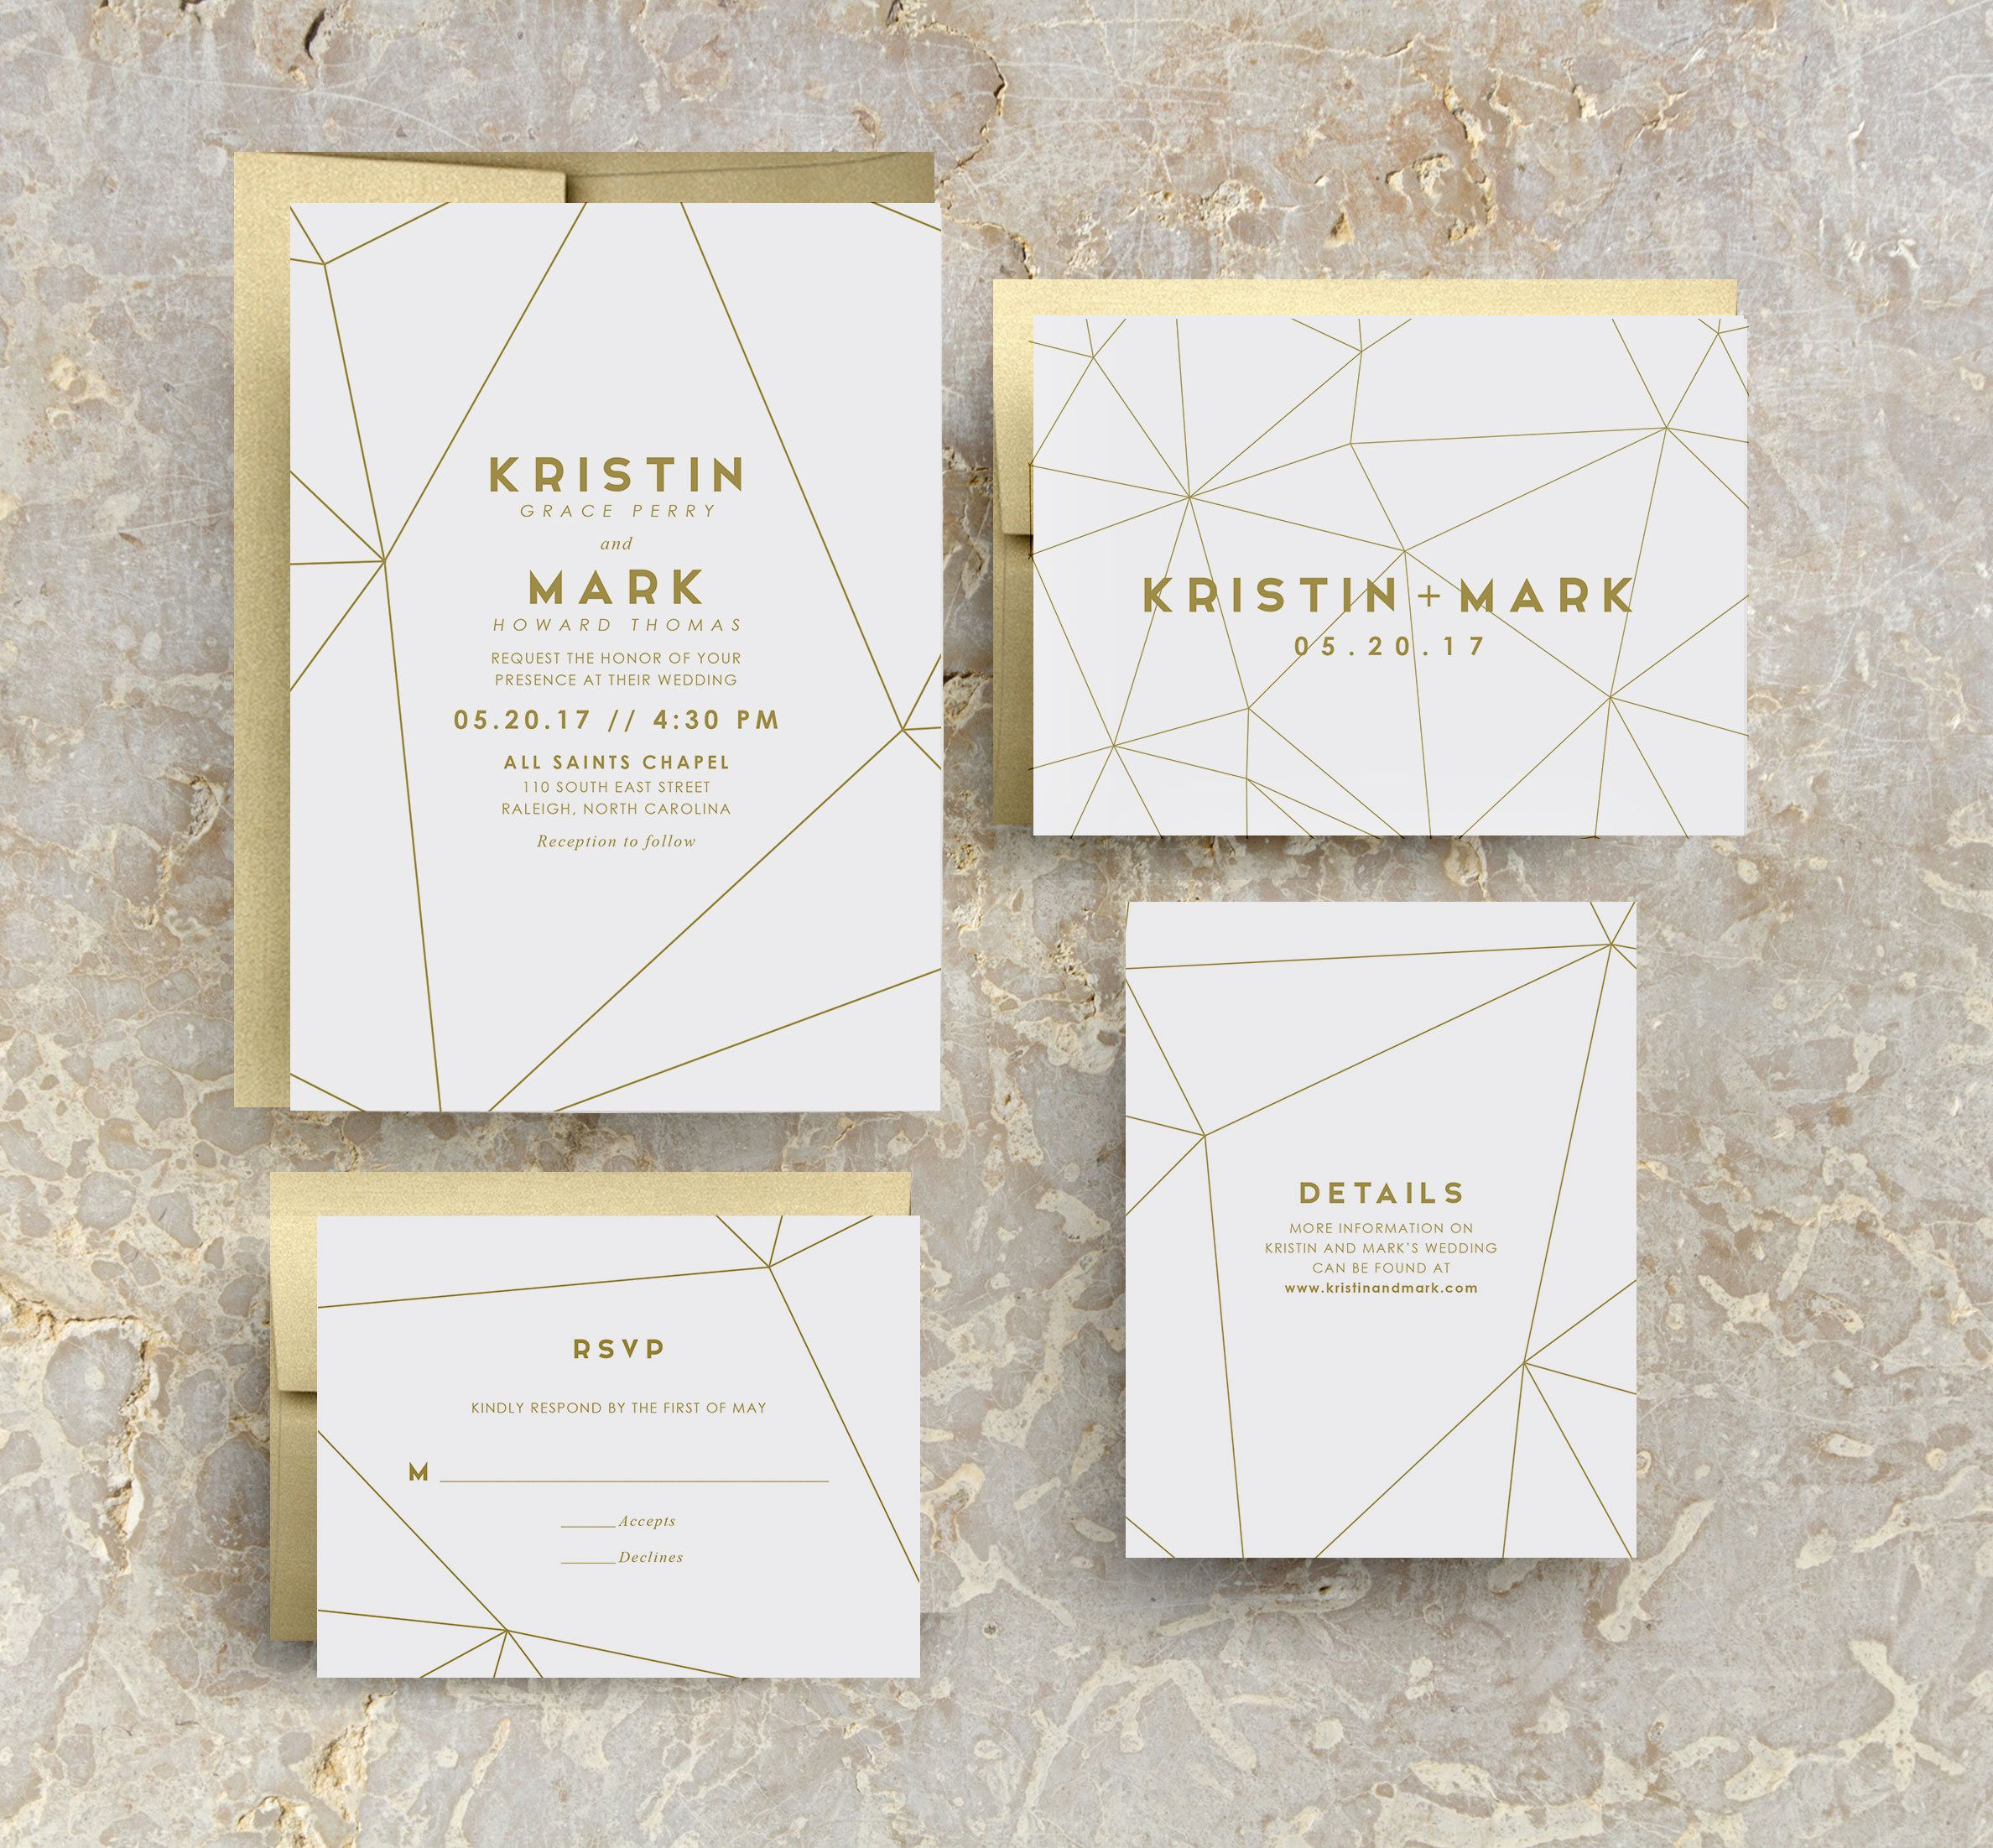 Modern Geometric Wedding Invitations In Gold Foil Print Or Gold Standard Ink For Gold Theme Wedding Modern Wedding Or Sophisticated Event In 2021 Geometric Wedding Invitation Geometric Invitations Printing Wedding Invitations